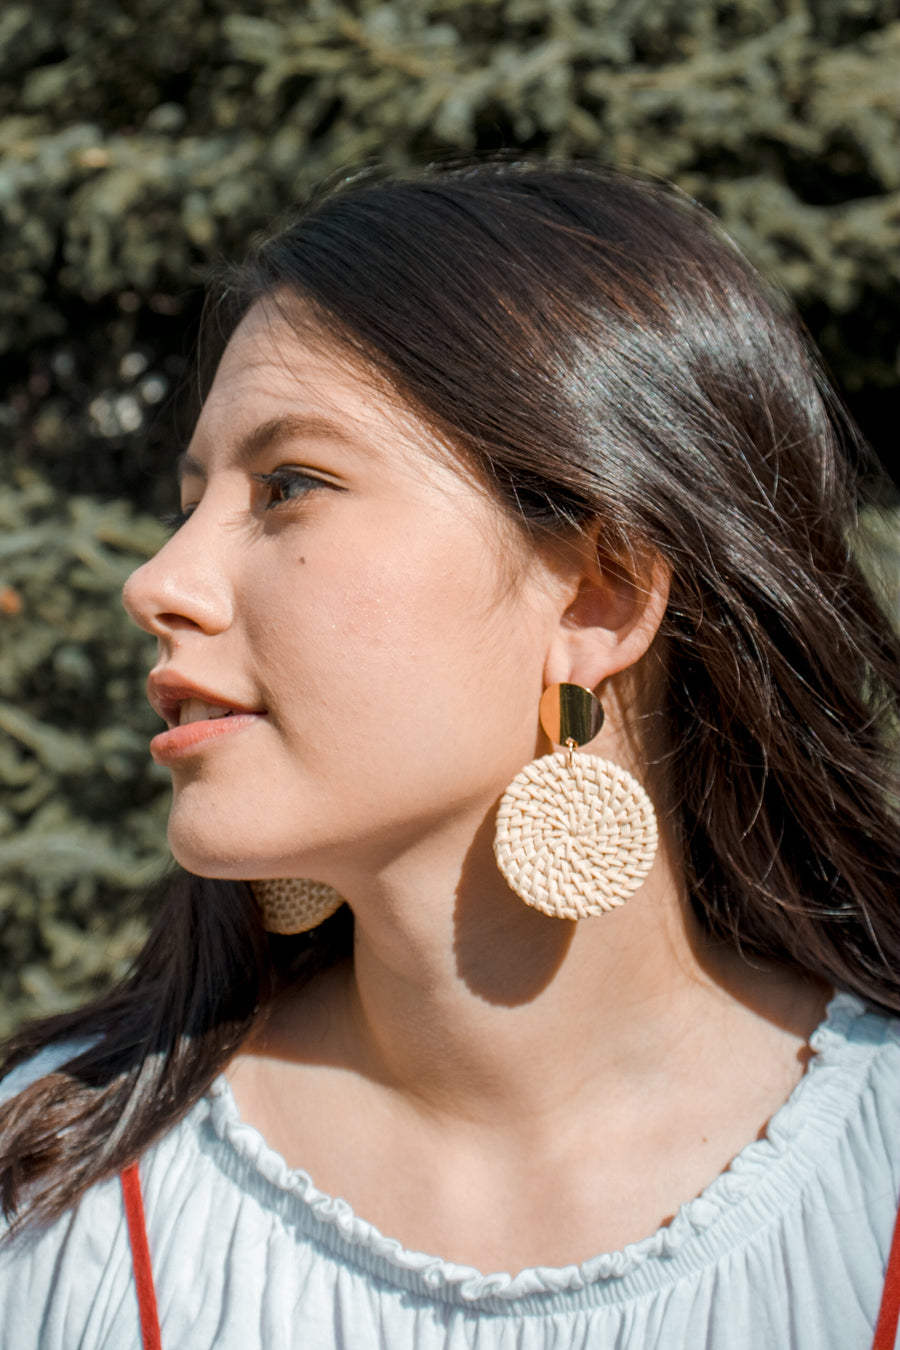 Hirsch & Timber Handmade Earrings: Boho Wicker Braid Full-Moon Earrings